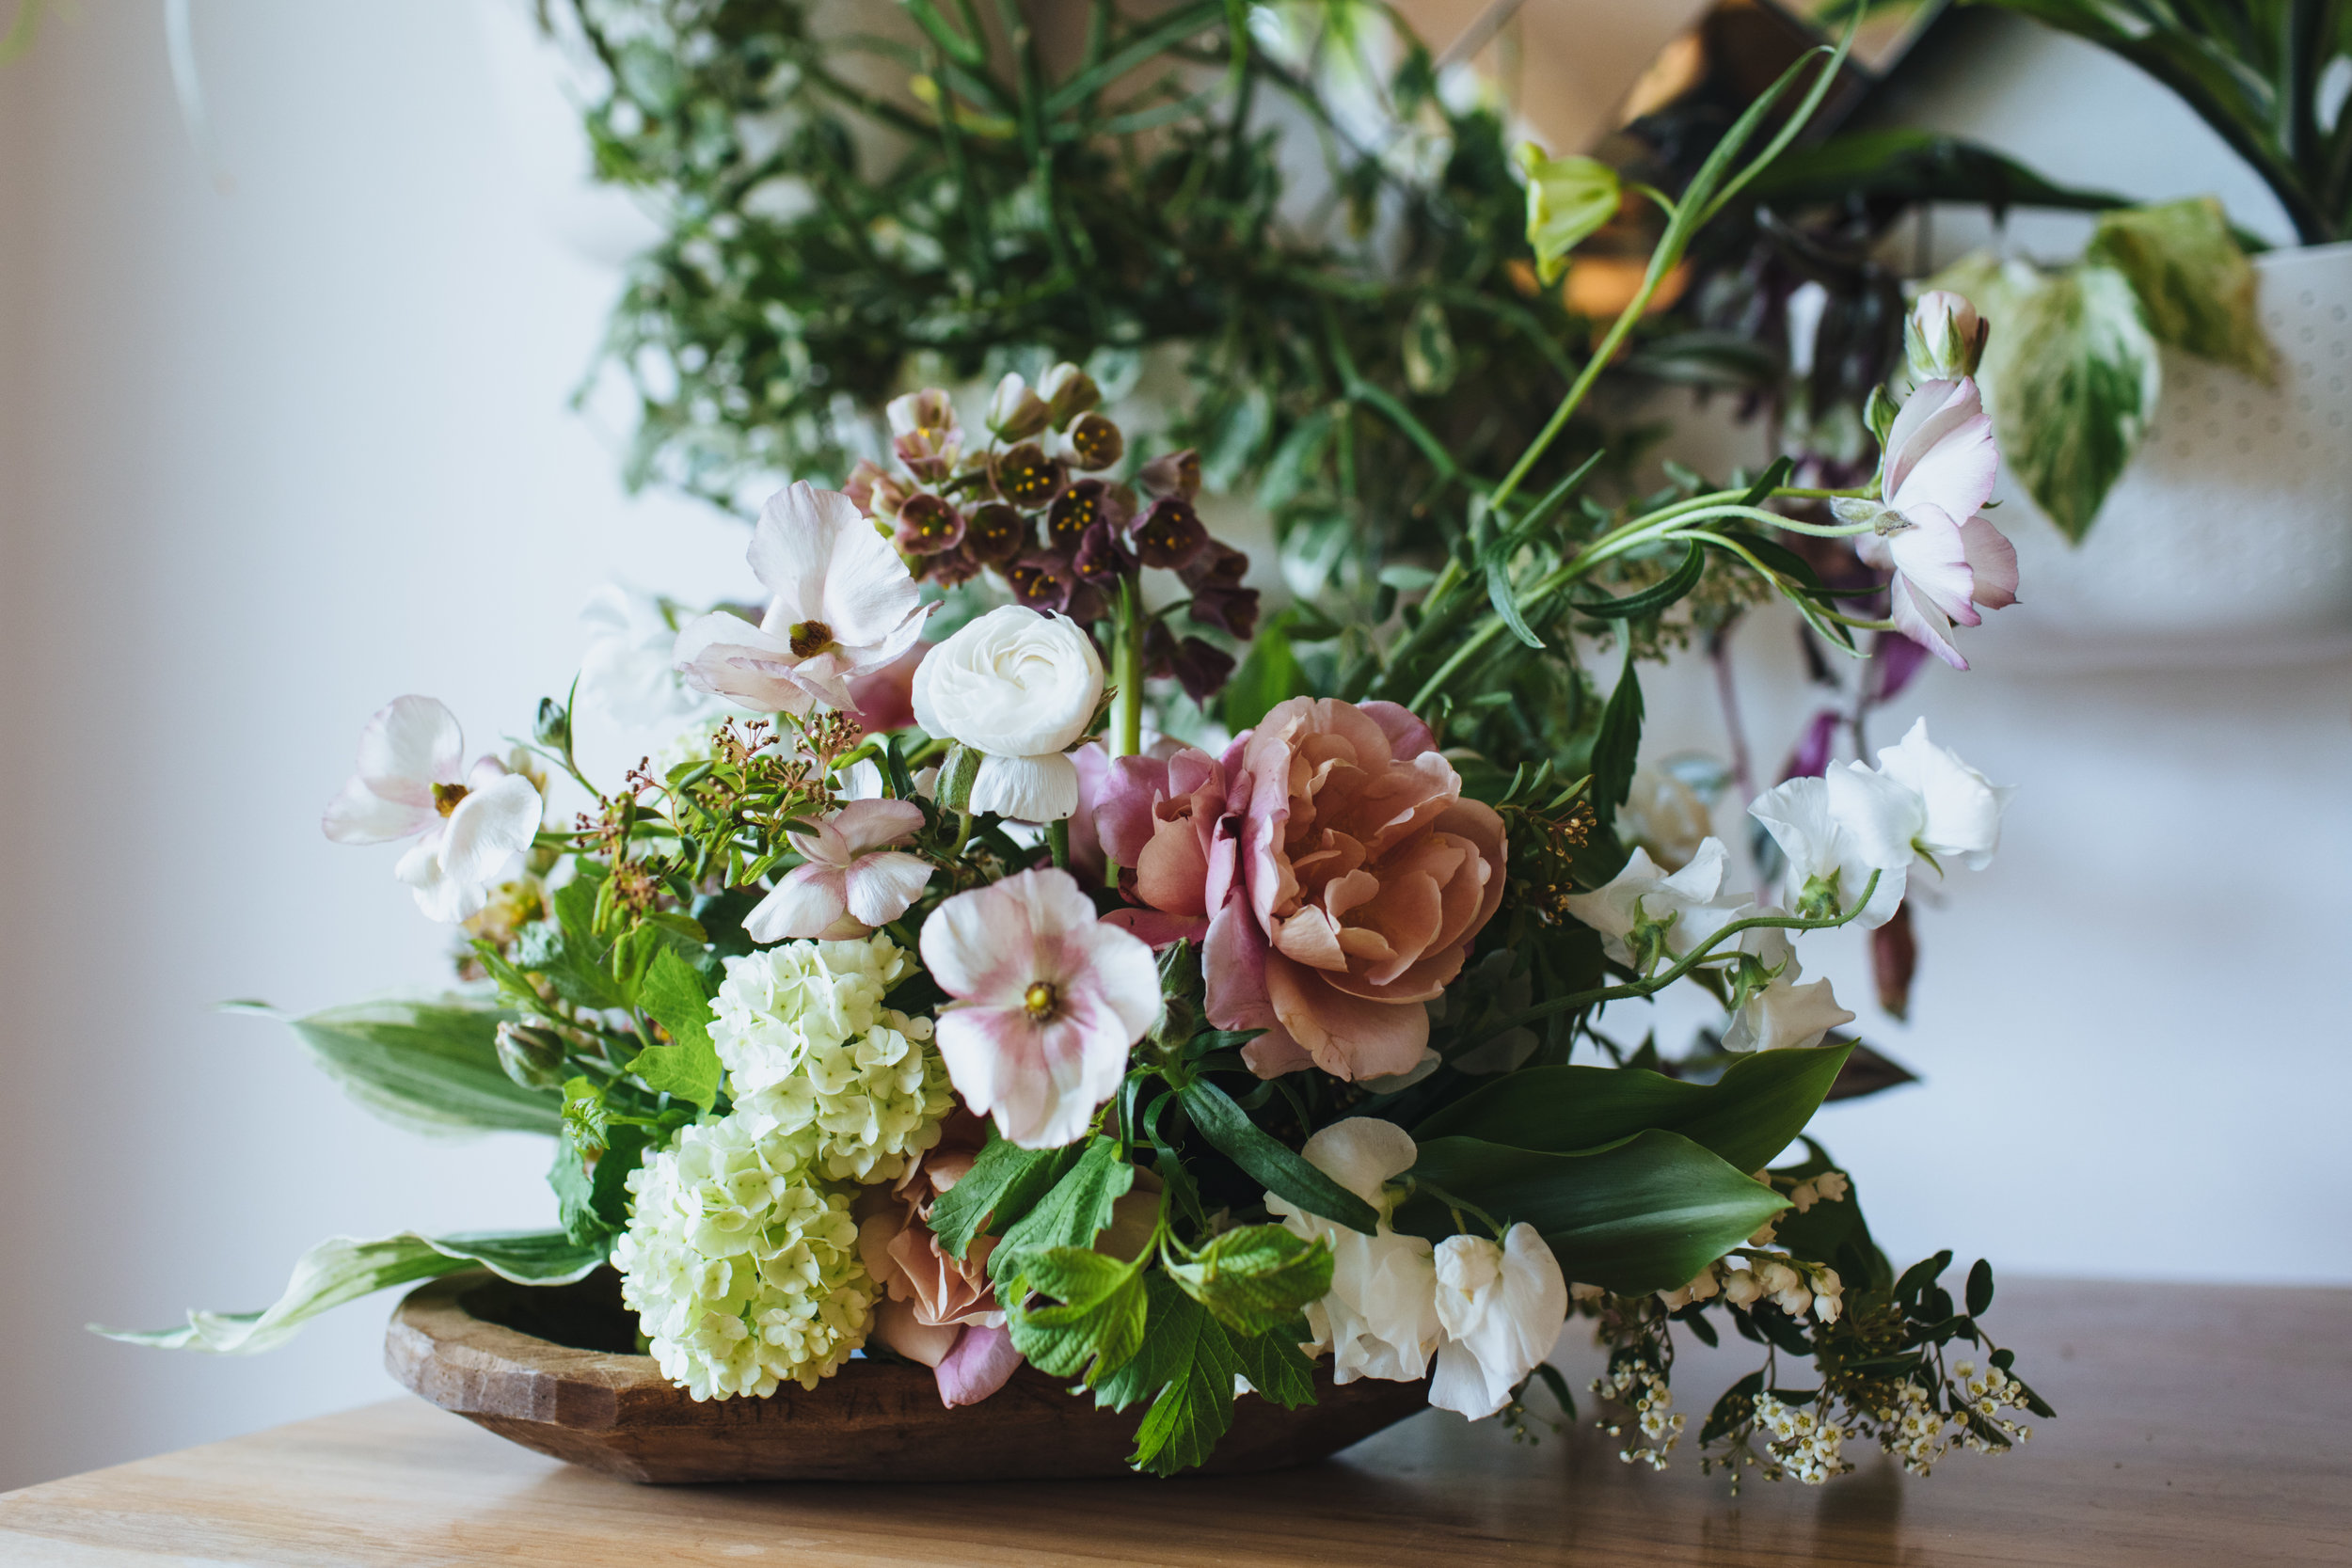 Moon Canyon Floral Design, Neutral & Organic floral centerpiece, blush, greenery, white, Art & Soul Events, Photographer: Rad + In Love, The Ruby Street Los Angeles Wedding Venue